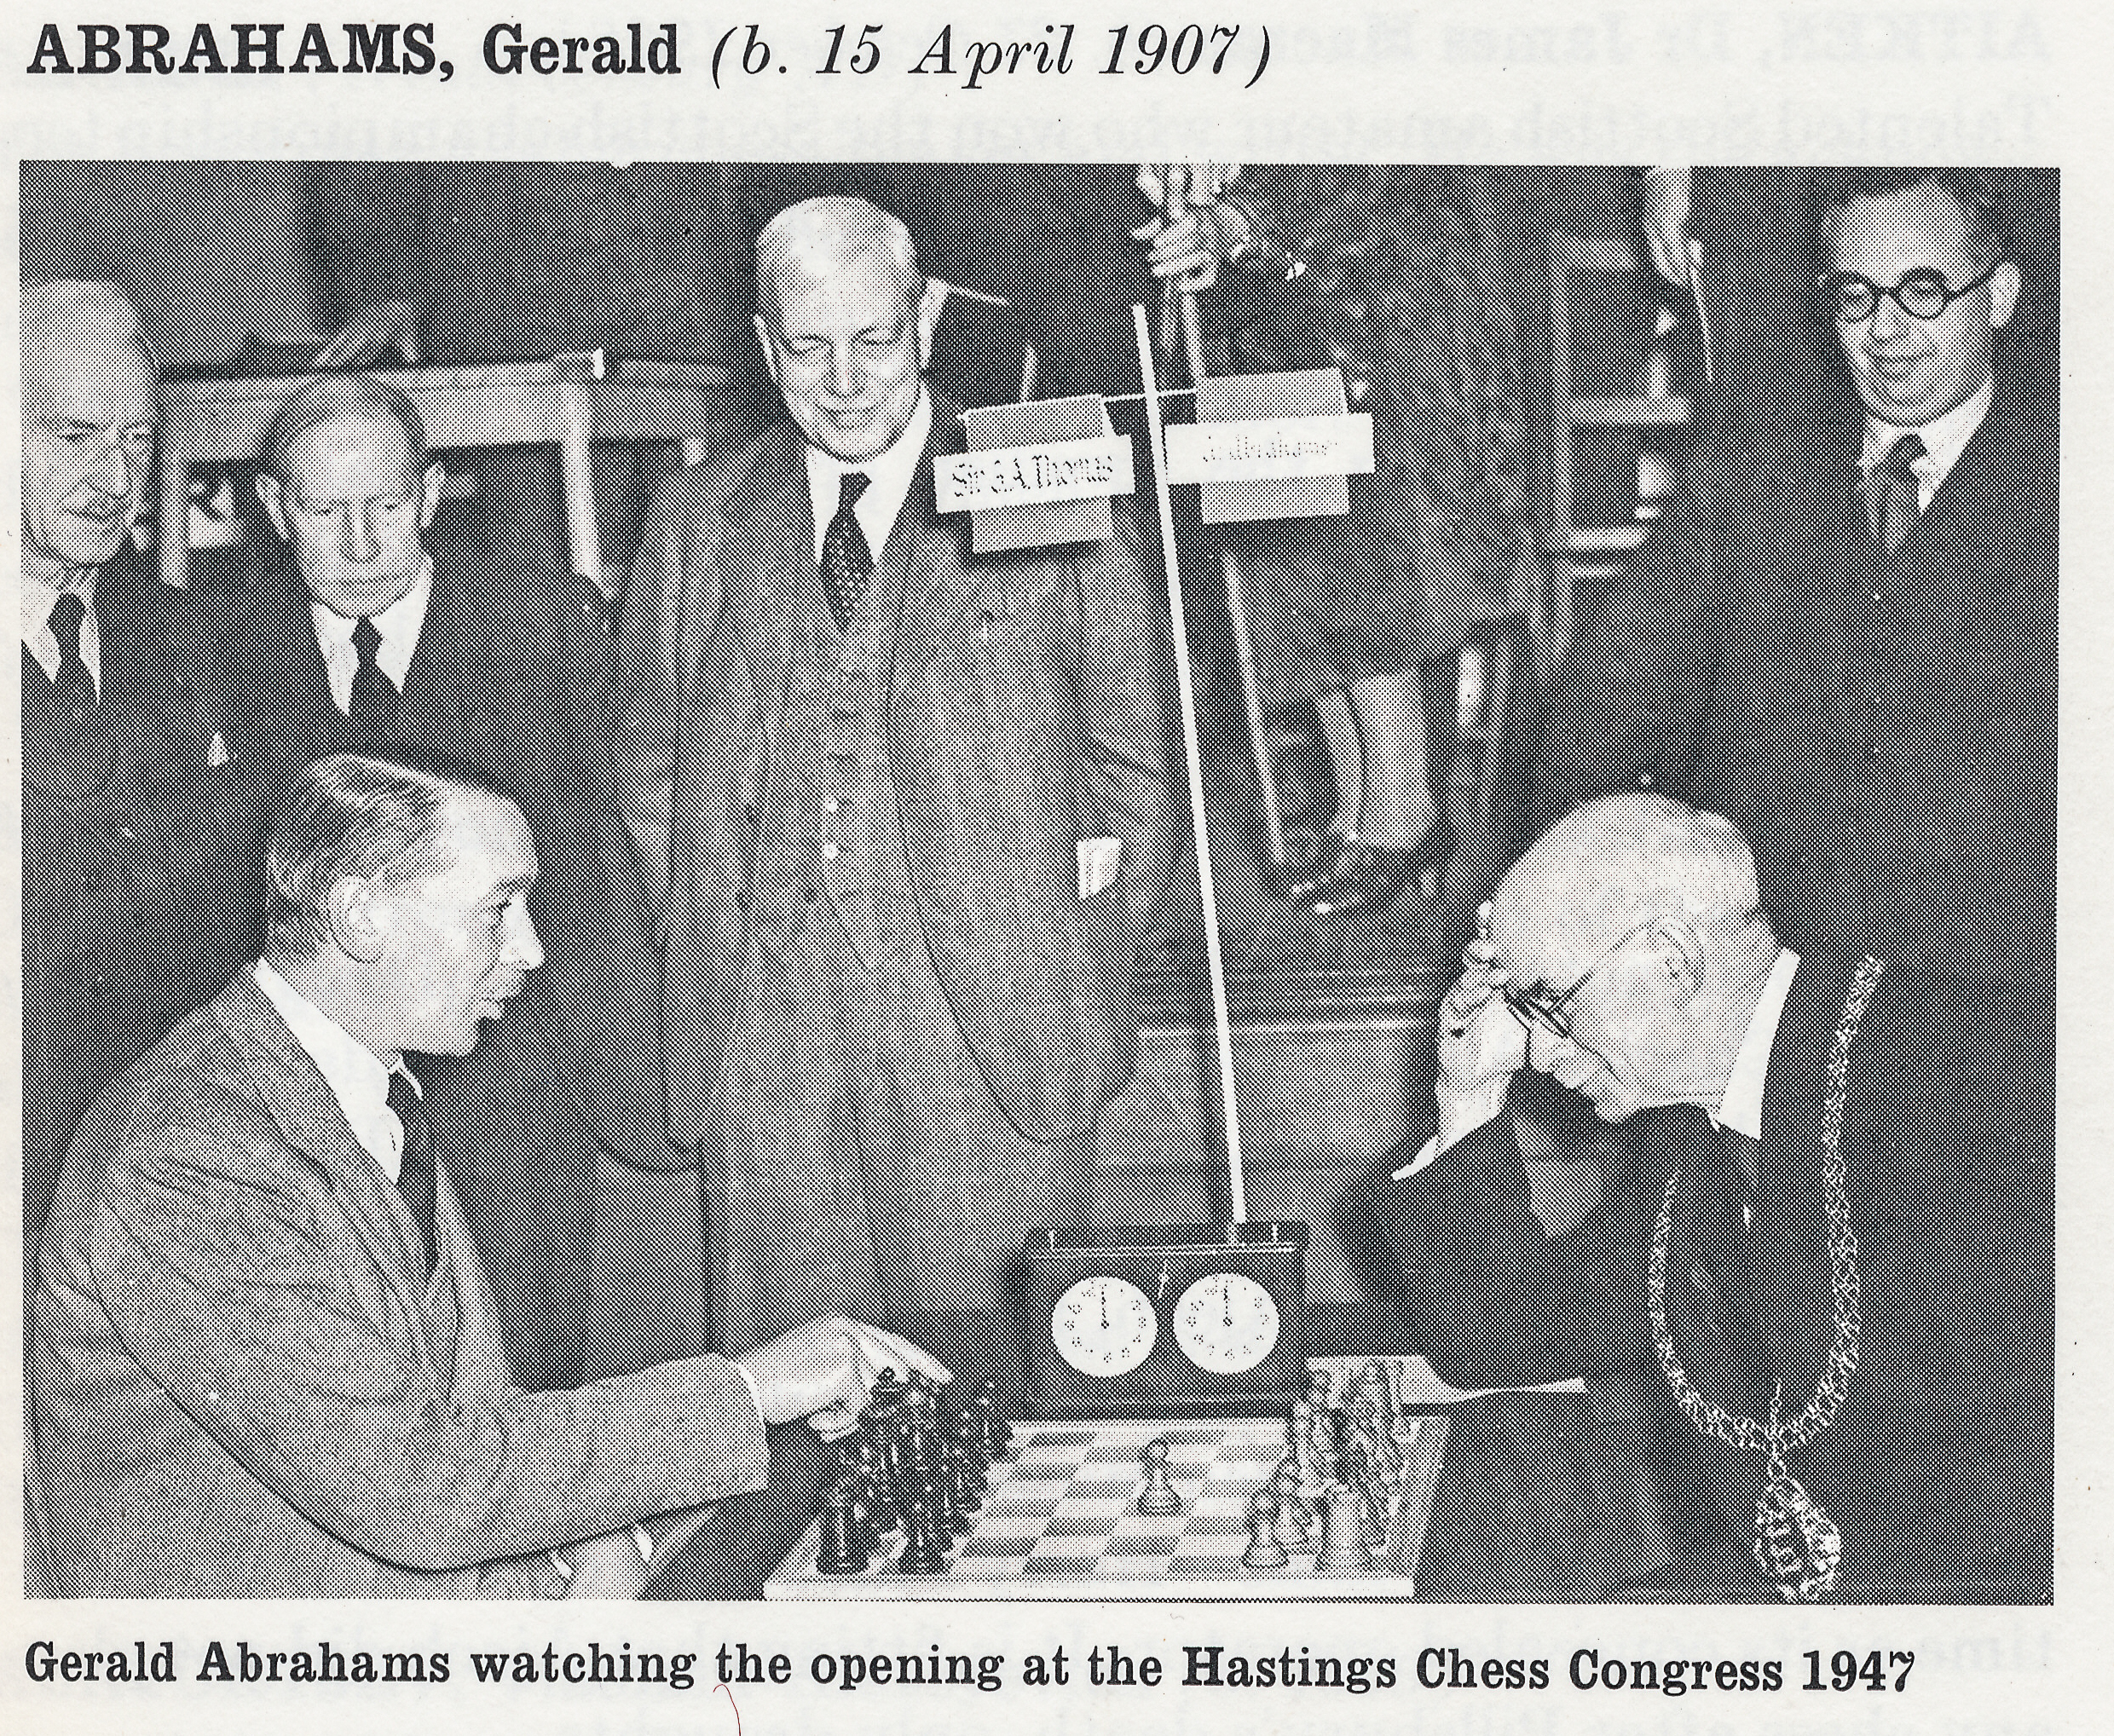 Gerald Abrahams watching the opening at the Hastings Chess Congress 1947. Also watching is Sir George Thomas who was GAs round one opponent. The Mayor was Alderman W. J. Fellows and he is opposite Sir Edmund McNeill Cooper-Key. Second from left is Percy J. Morren who was the Hasting's Club President